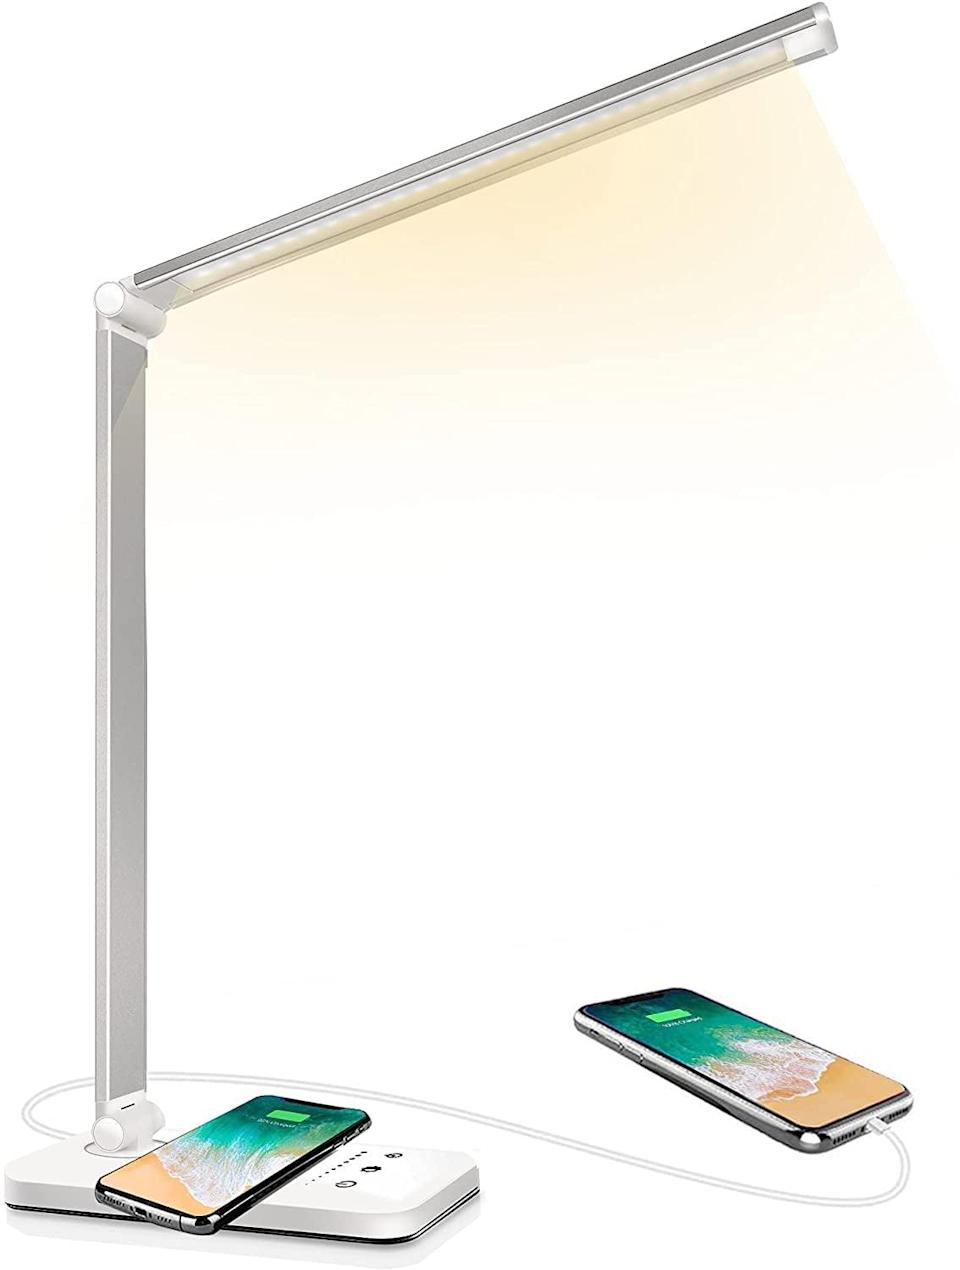 <p>Whether they're a student or a young professional, a sleek lamp like the <span>LED Desk Lamp With Wireless Charger</span> ($27) does more than just provide light. It's also wireless charger and has a USB port for extra charging. The lamp has ten brightness levels, five lighting modes, multidirectional adjusting, and has an auto timer for when they fall asleep while studying. </p>